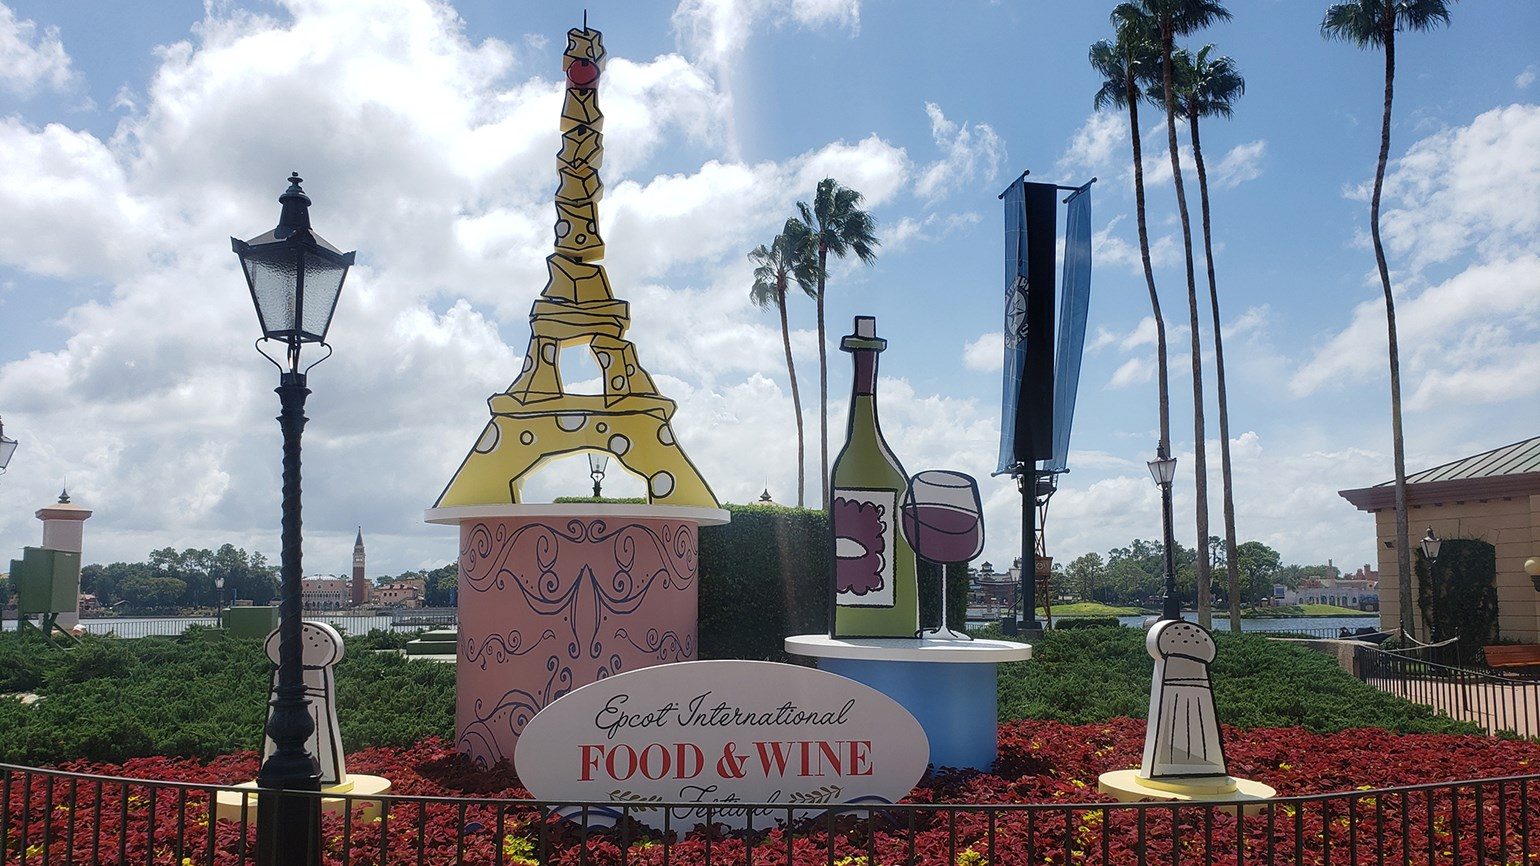 More eats, more days to enjoy Epcot's Food & Wine Festival